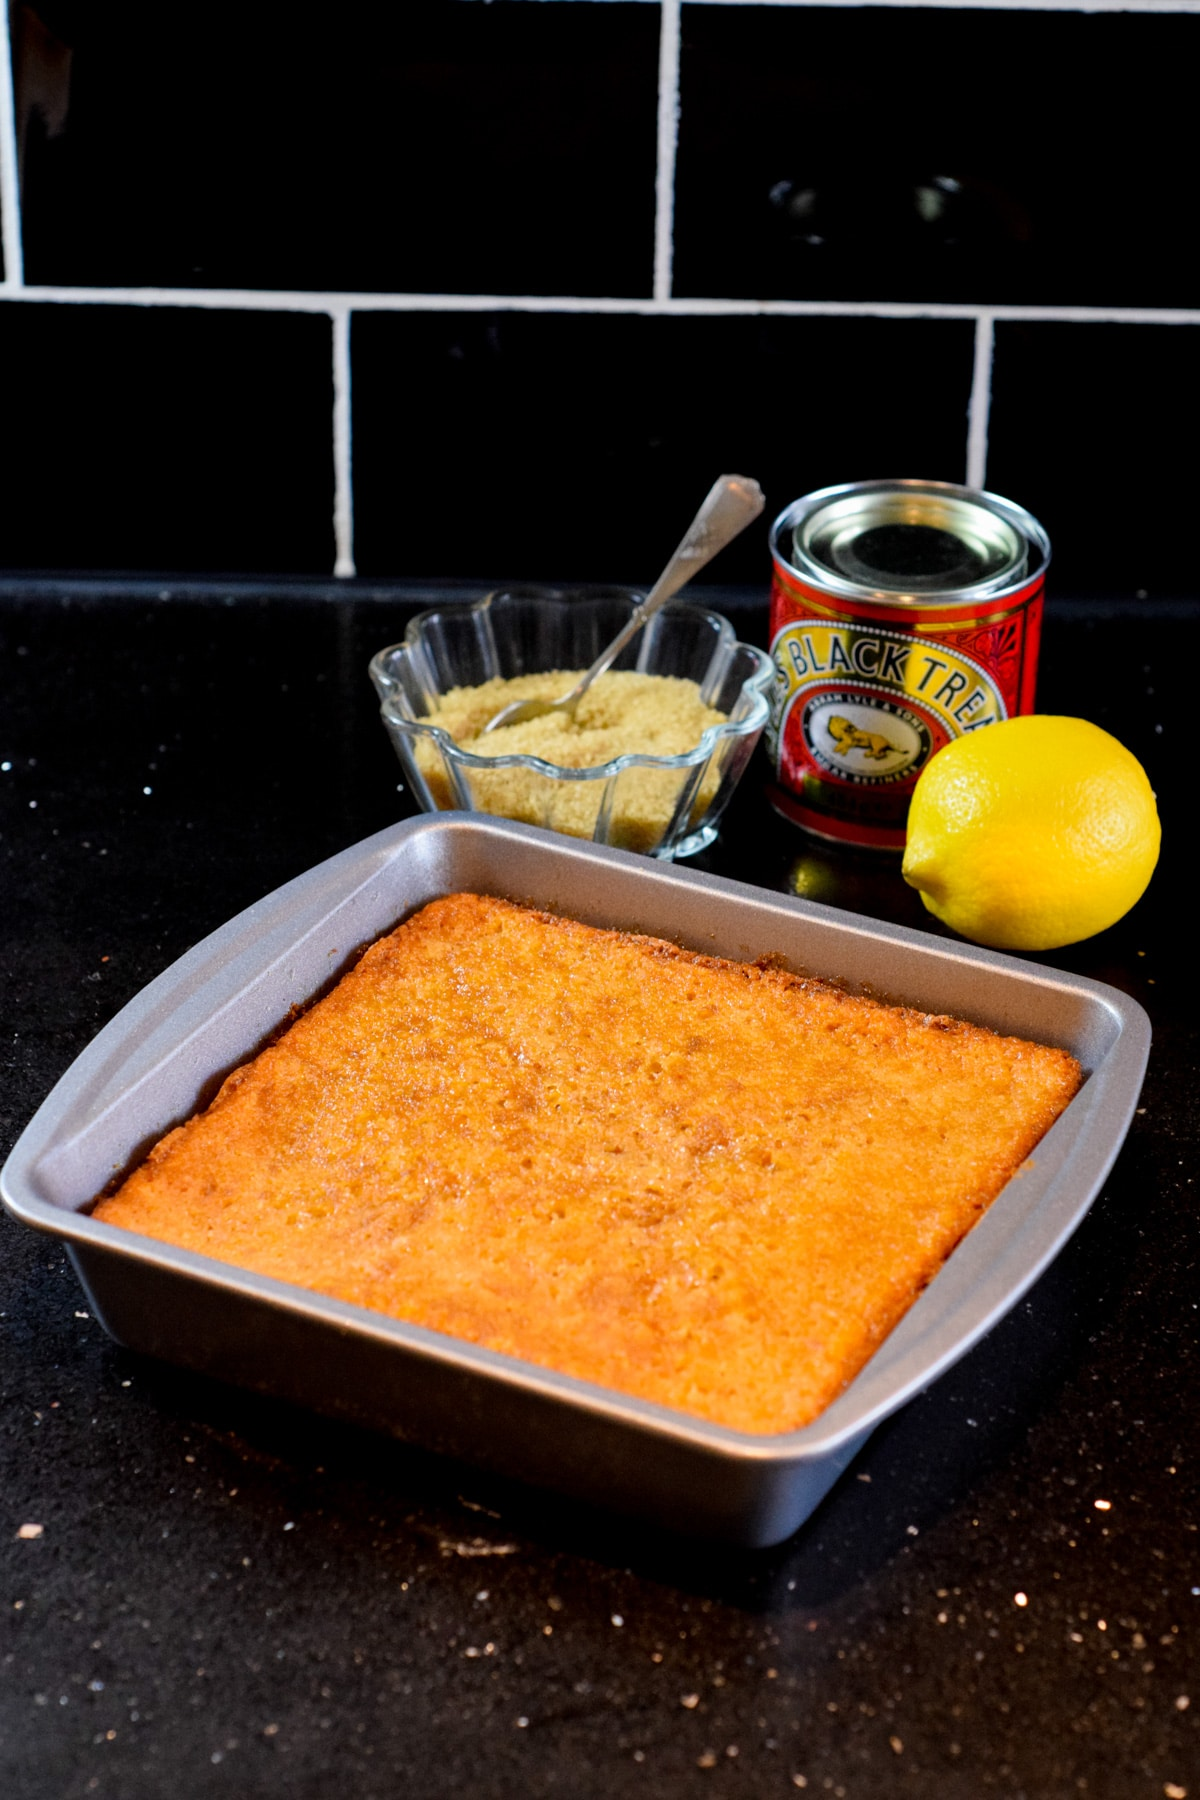 Hot treacle sponge pudding recipe with black treacle, golden syrup and a hint of lemon